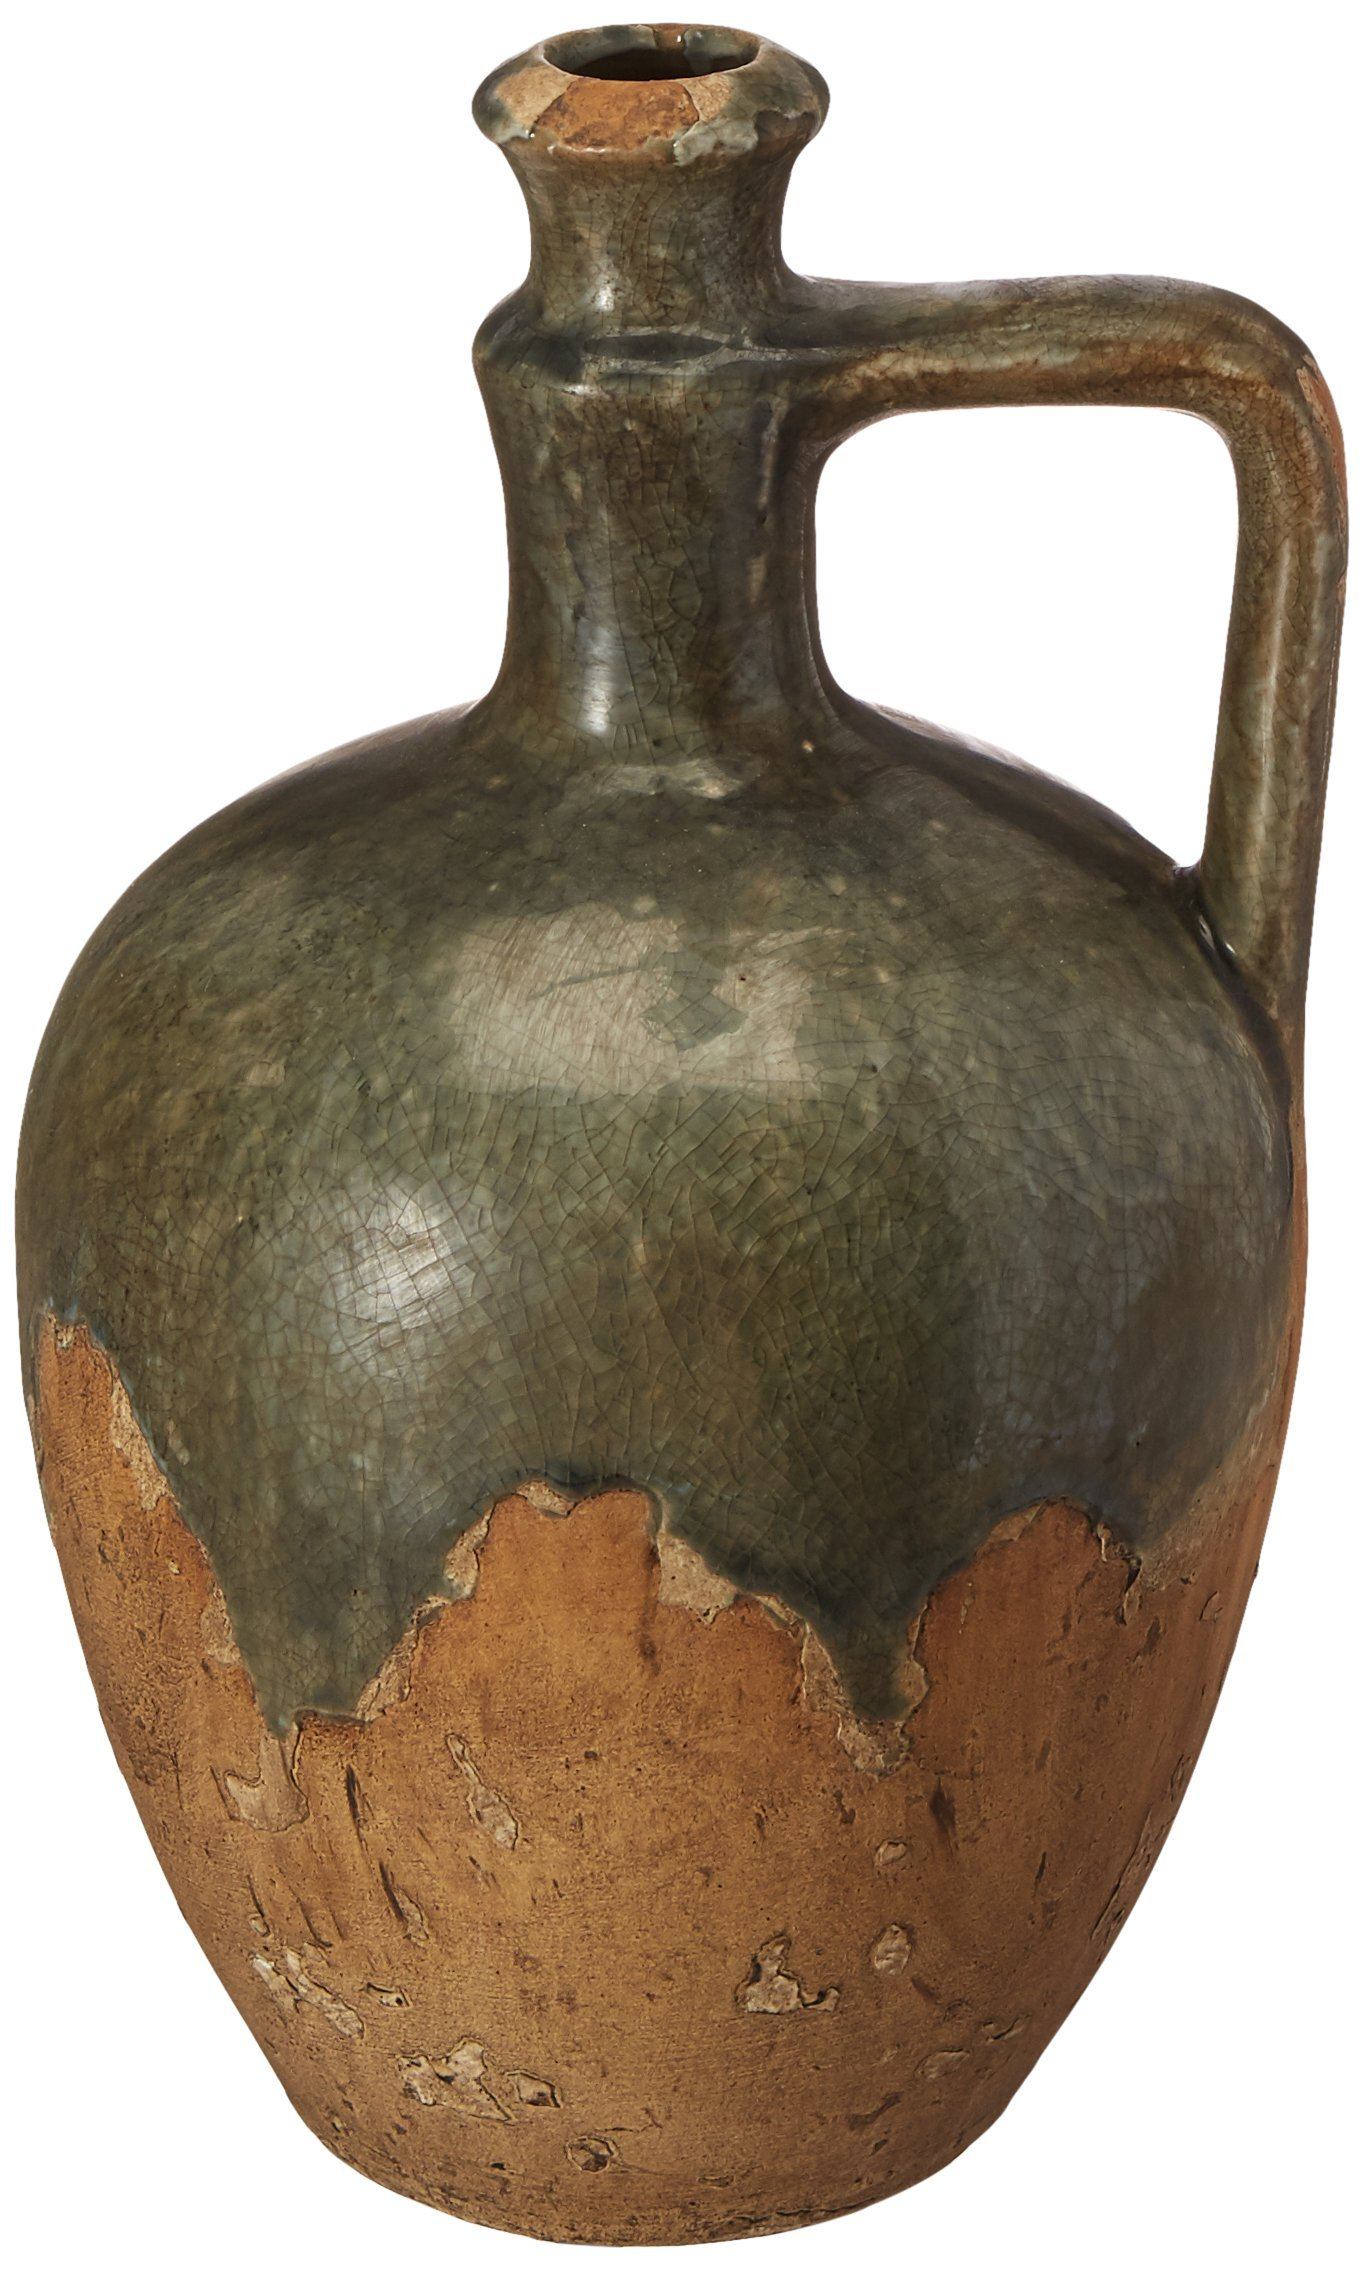 IMAX 13323 Bardot Blue Stone Large Ceramic Jug - 7.5 in. (W) x 15 in. (H) Handcrafted, Fire Glazed Clay Jug in Antiqued Look. Home Decor Stoneware